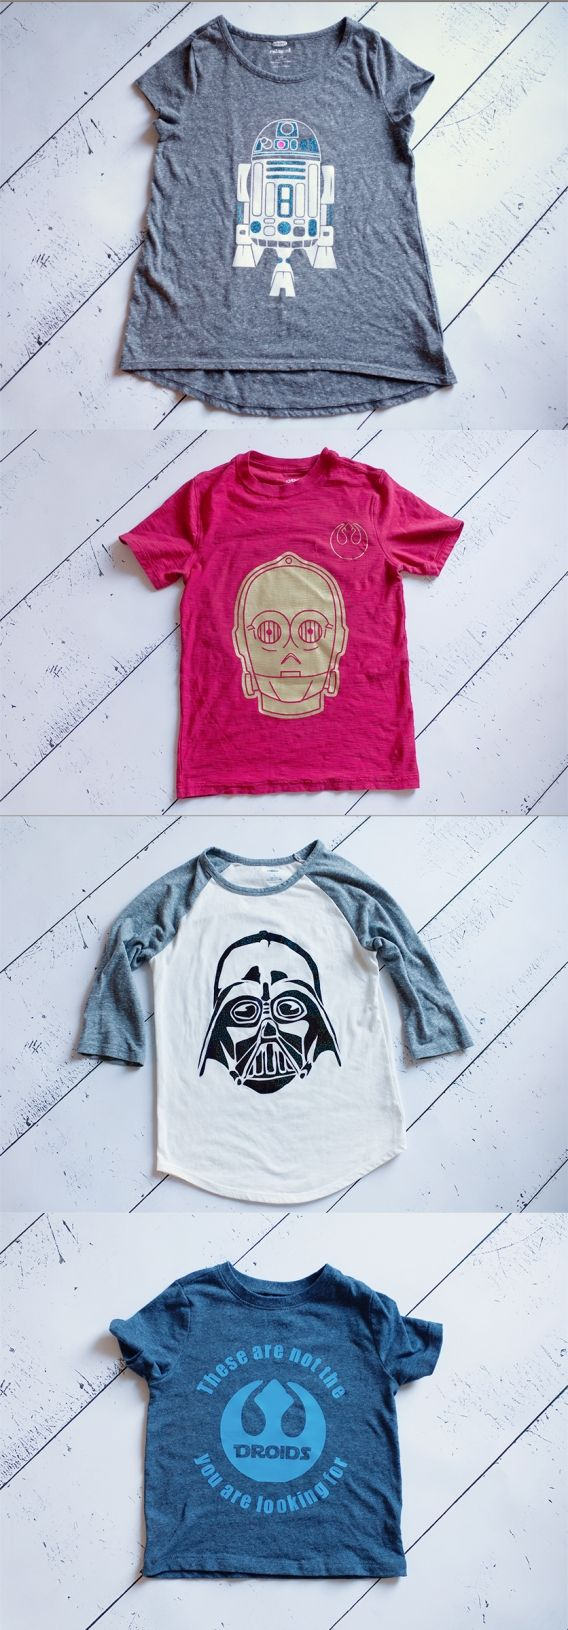 Star Wars shirt ideas for Disney World trip - Customize your shirts with heat transfer vinyl using your silhouette